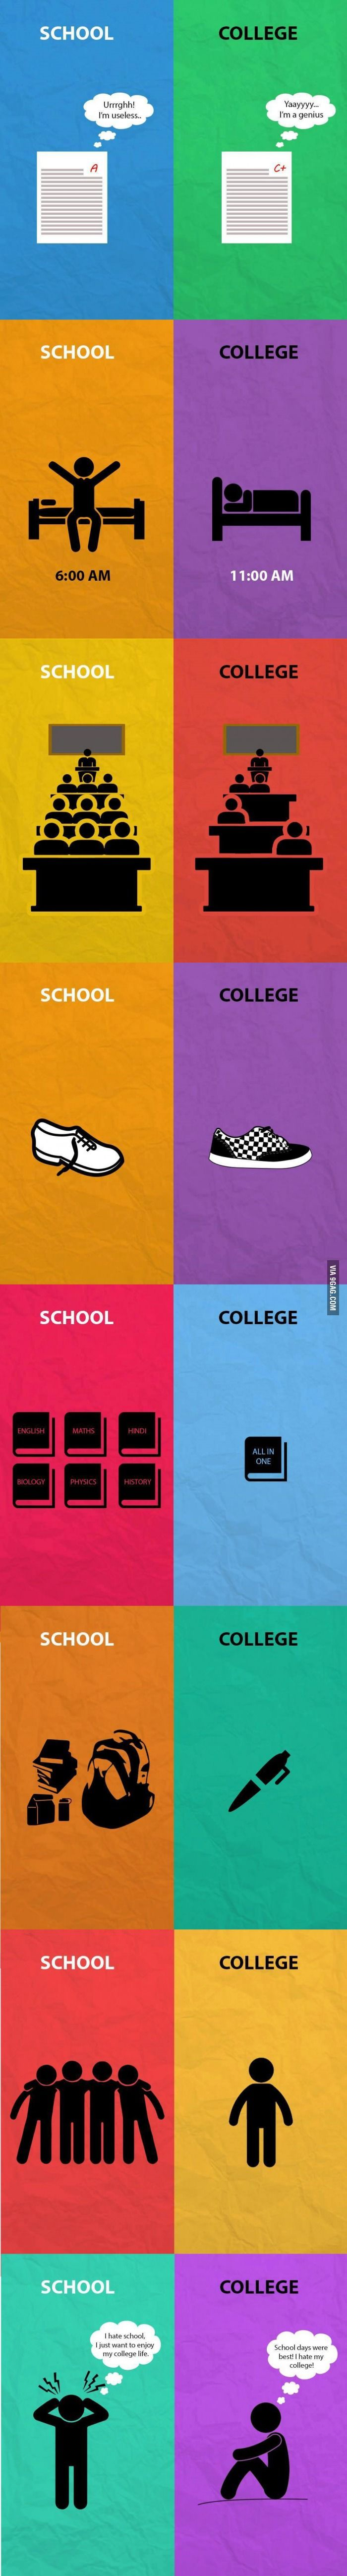 School Life vs College Life Accurately Explained In Simple Graphics